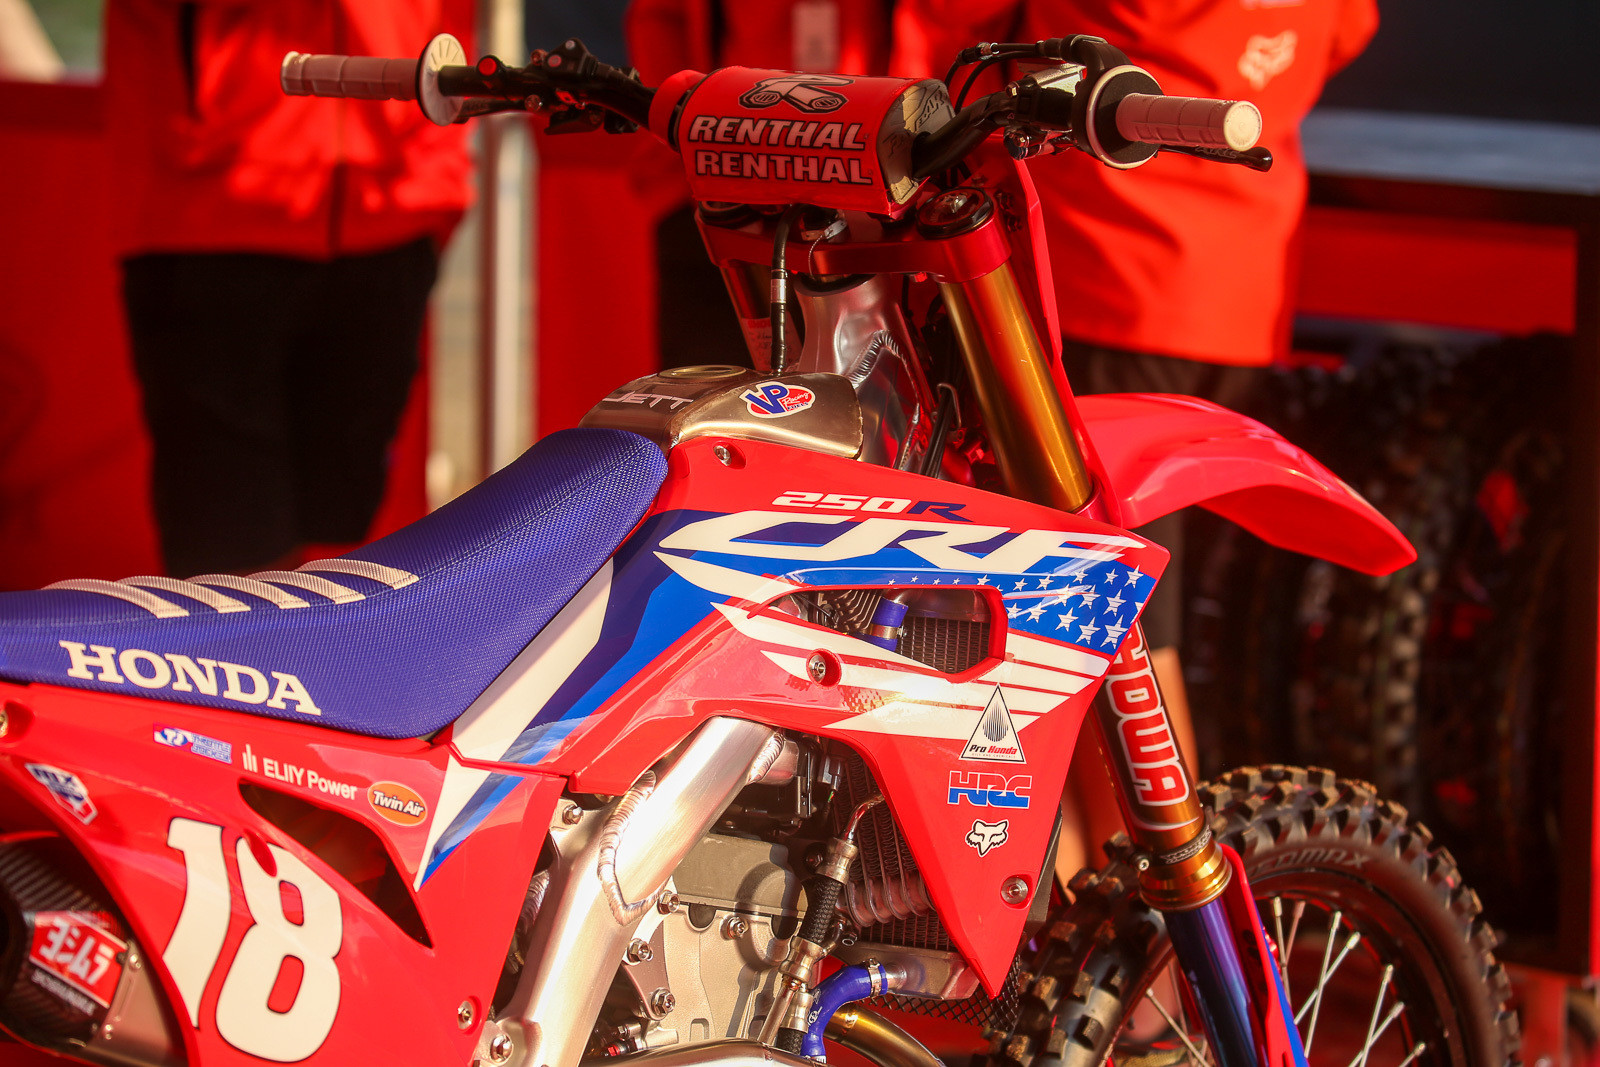 The red, white, and blue was out in force. Throttle Jockey did a nice job on this one for the Team Honda HRC boys.